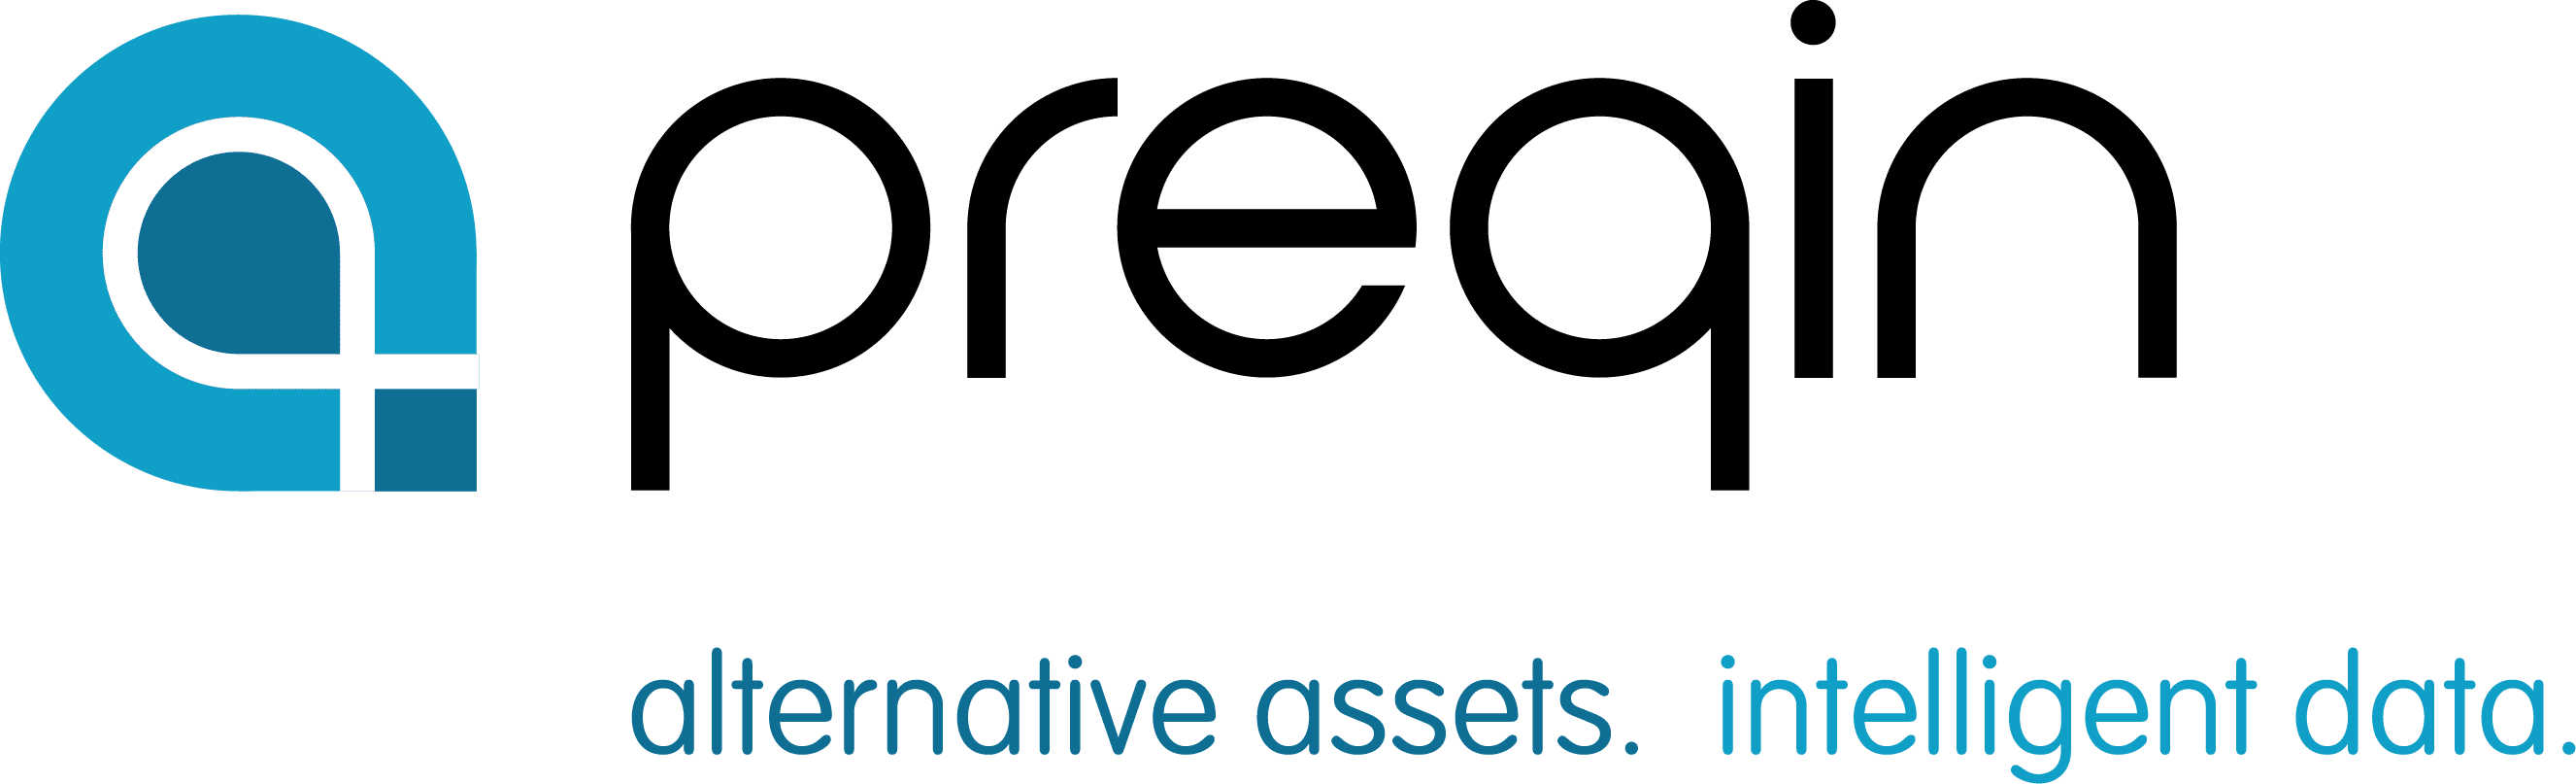 Preqin-Logo-Outlined.png